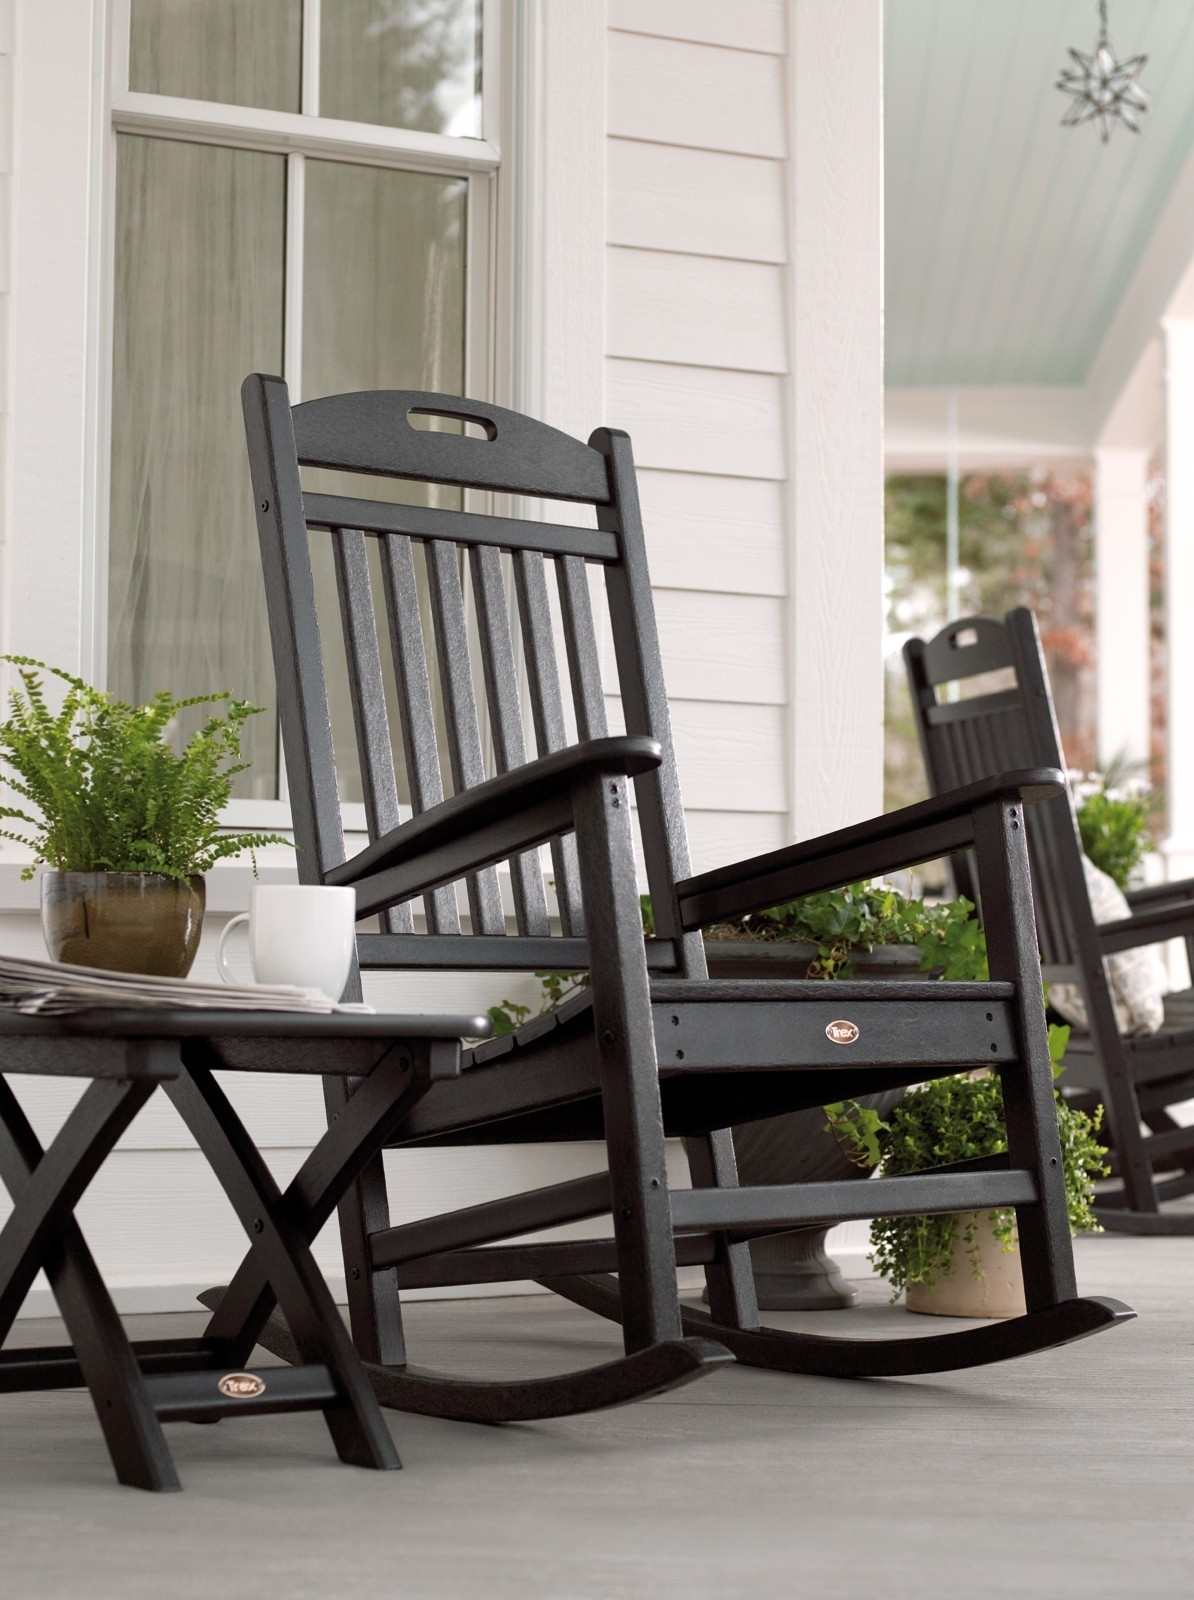 Yacht Club Rocking Chair Throughout Outdoor Rocking Chairs (View 1 of 15)